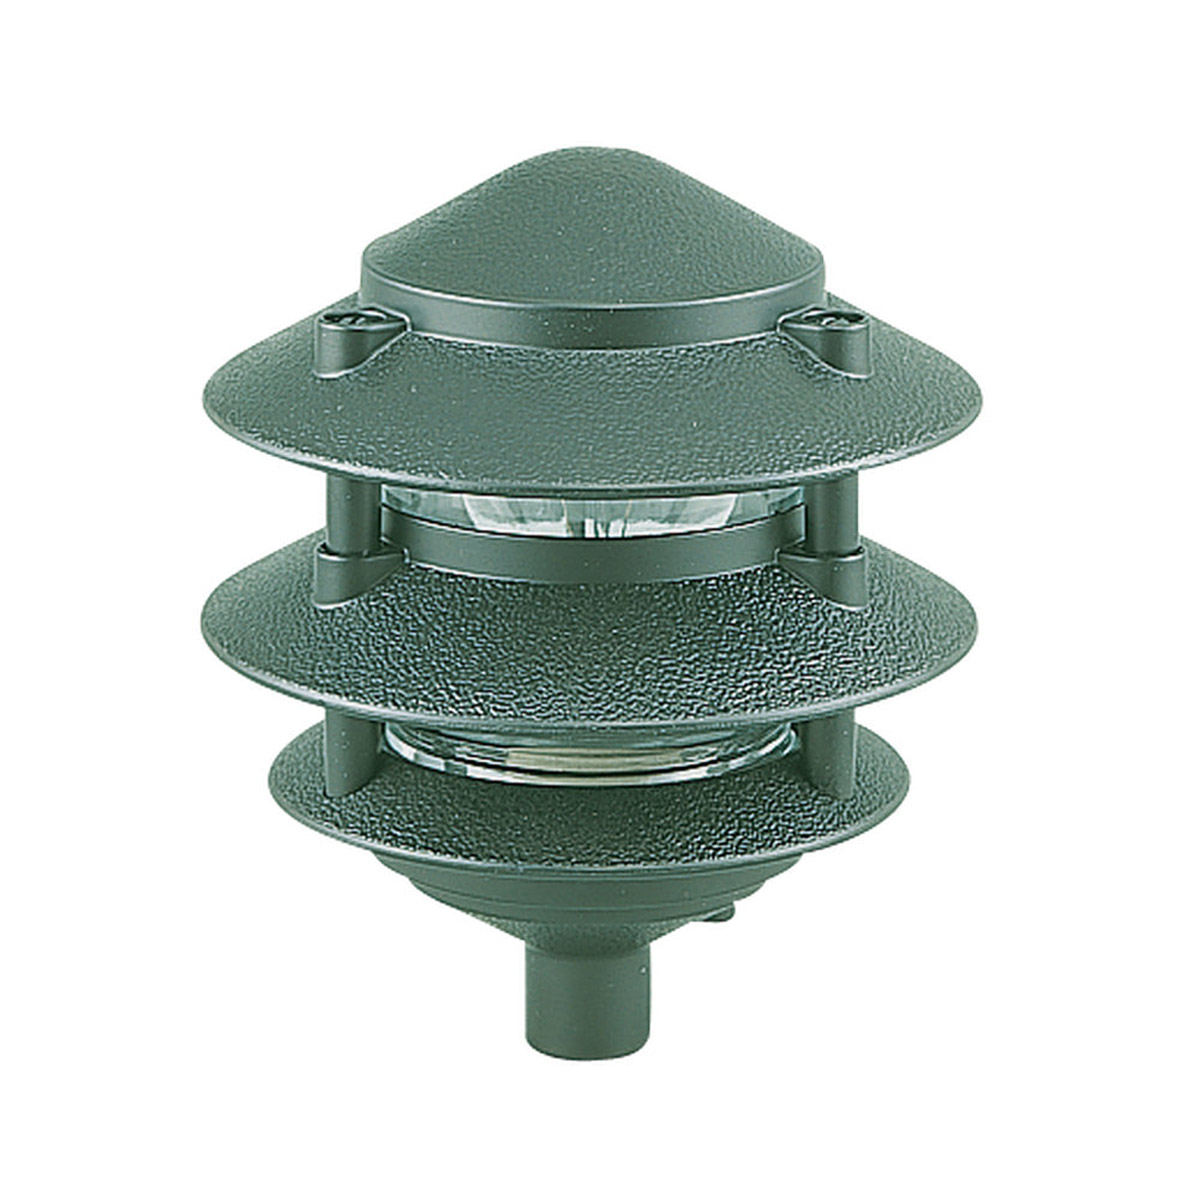 Sea Gull Lighting Landscape Lighting One Light Outdoor Path Fixture in Emerald Green 9226-95 photo